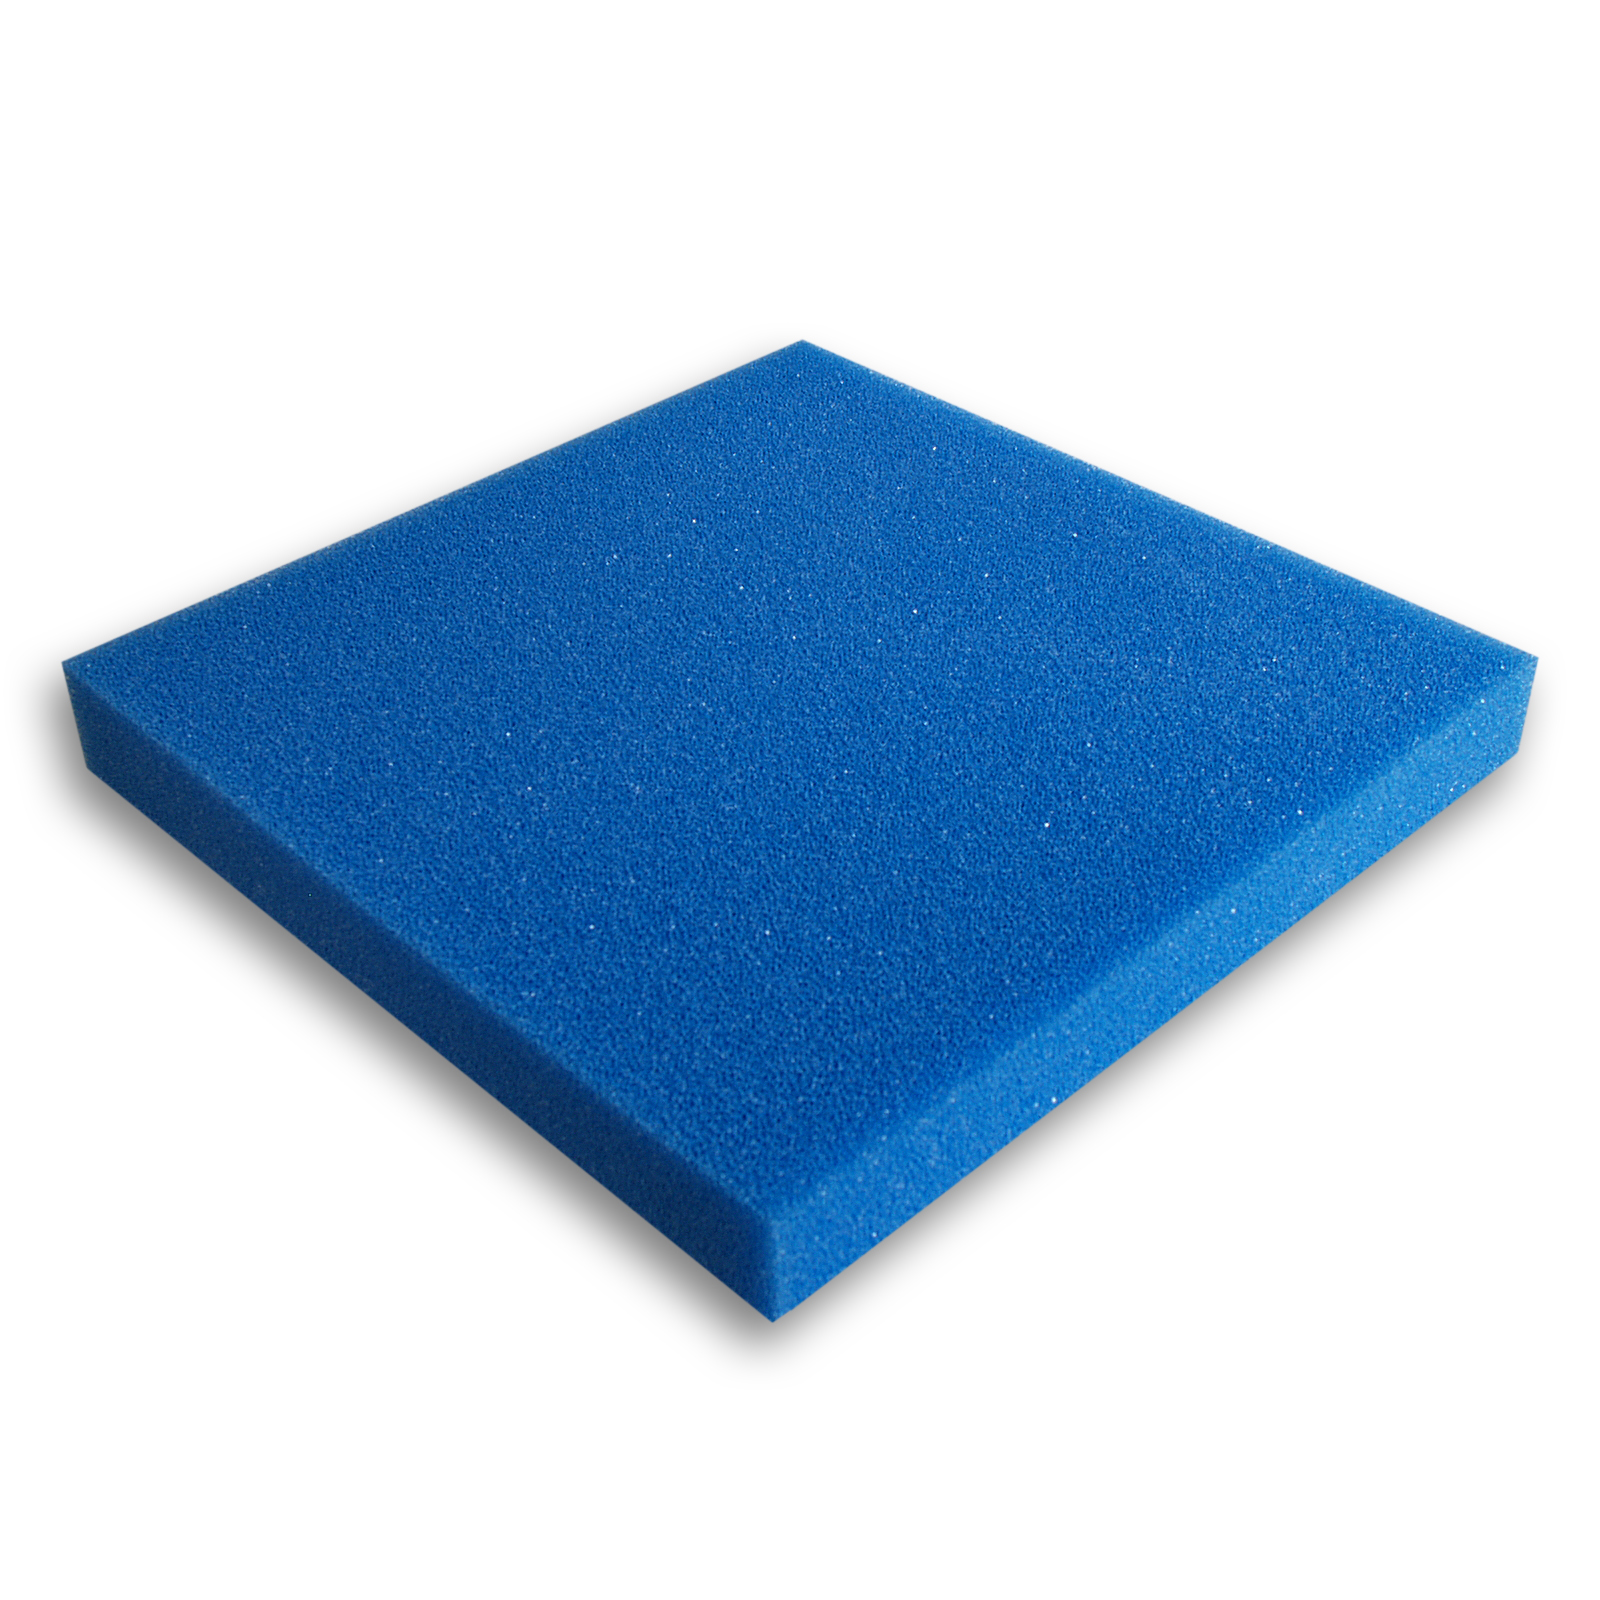 Filter sponge foam mat 100x100x5cm medium 20ppi for Gartengestaltung 100 qm